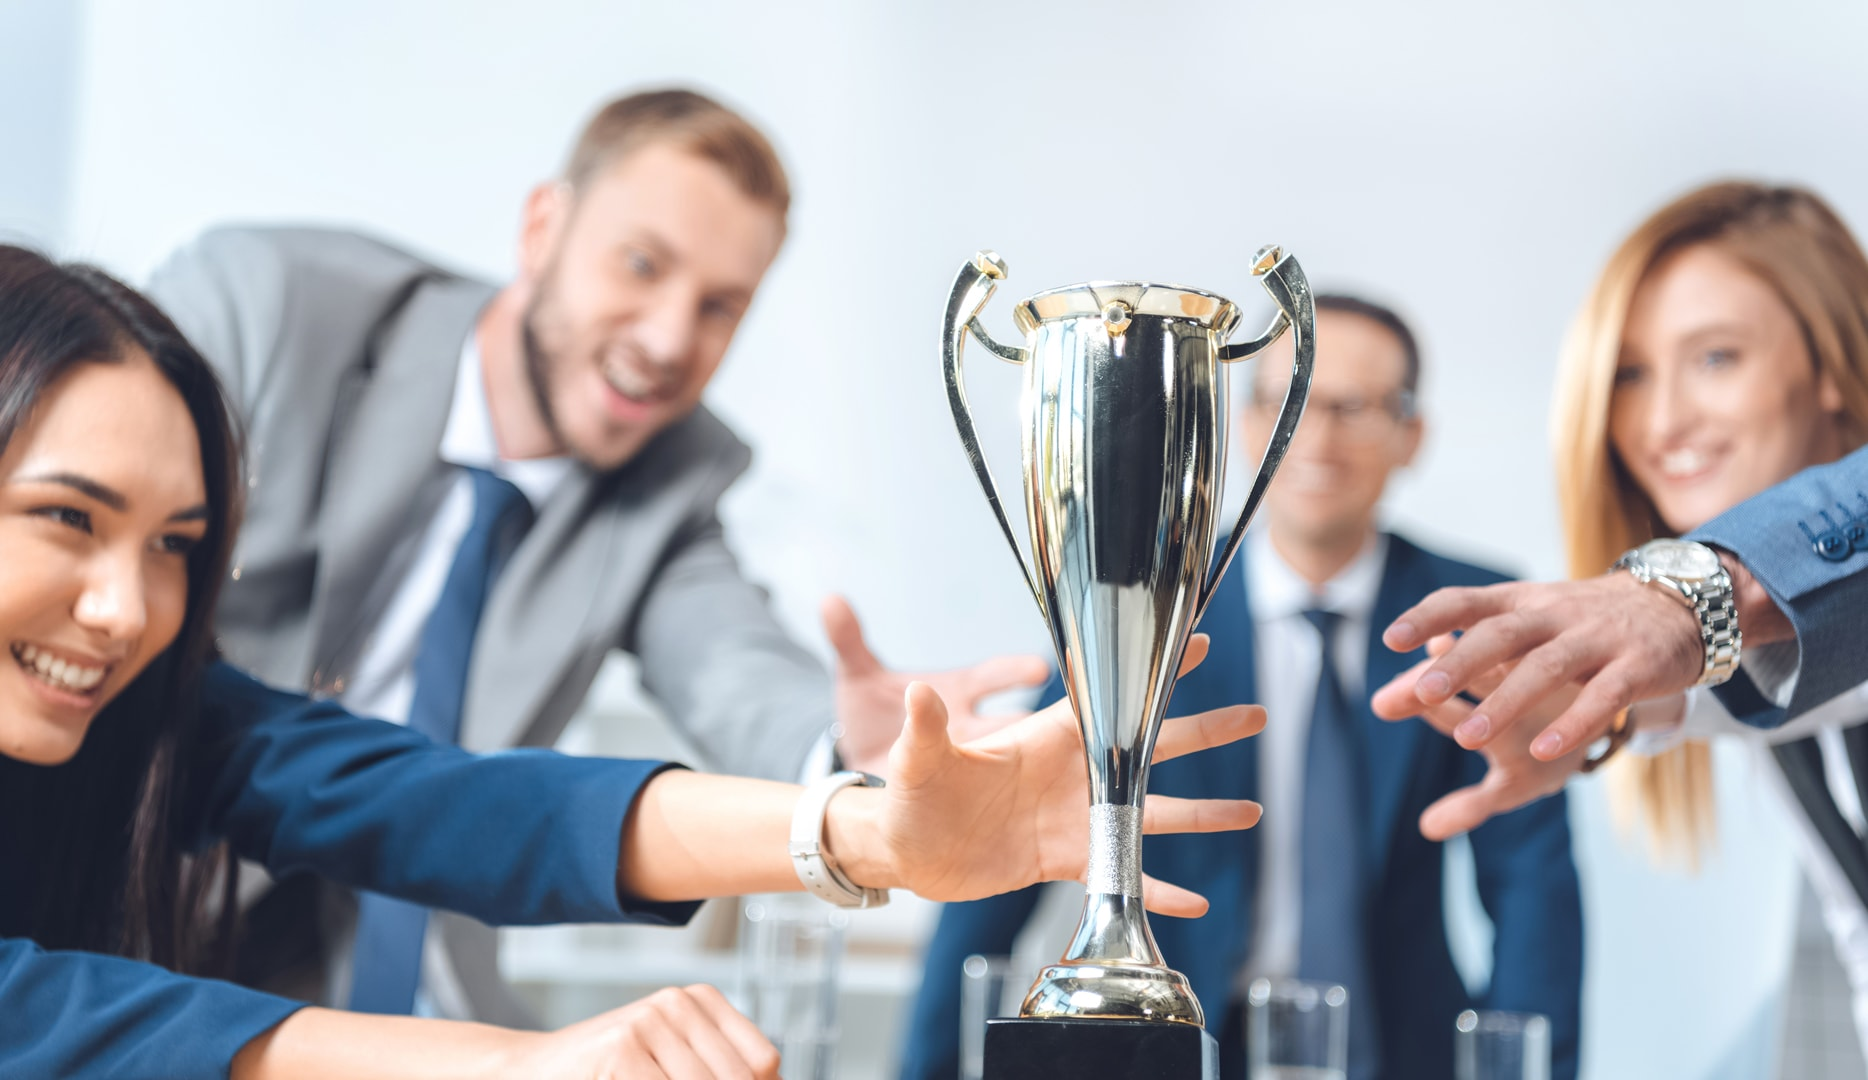 Ways For Every Recruiter to Stay Competitive